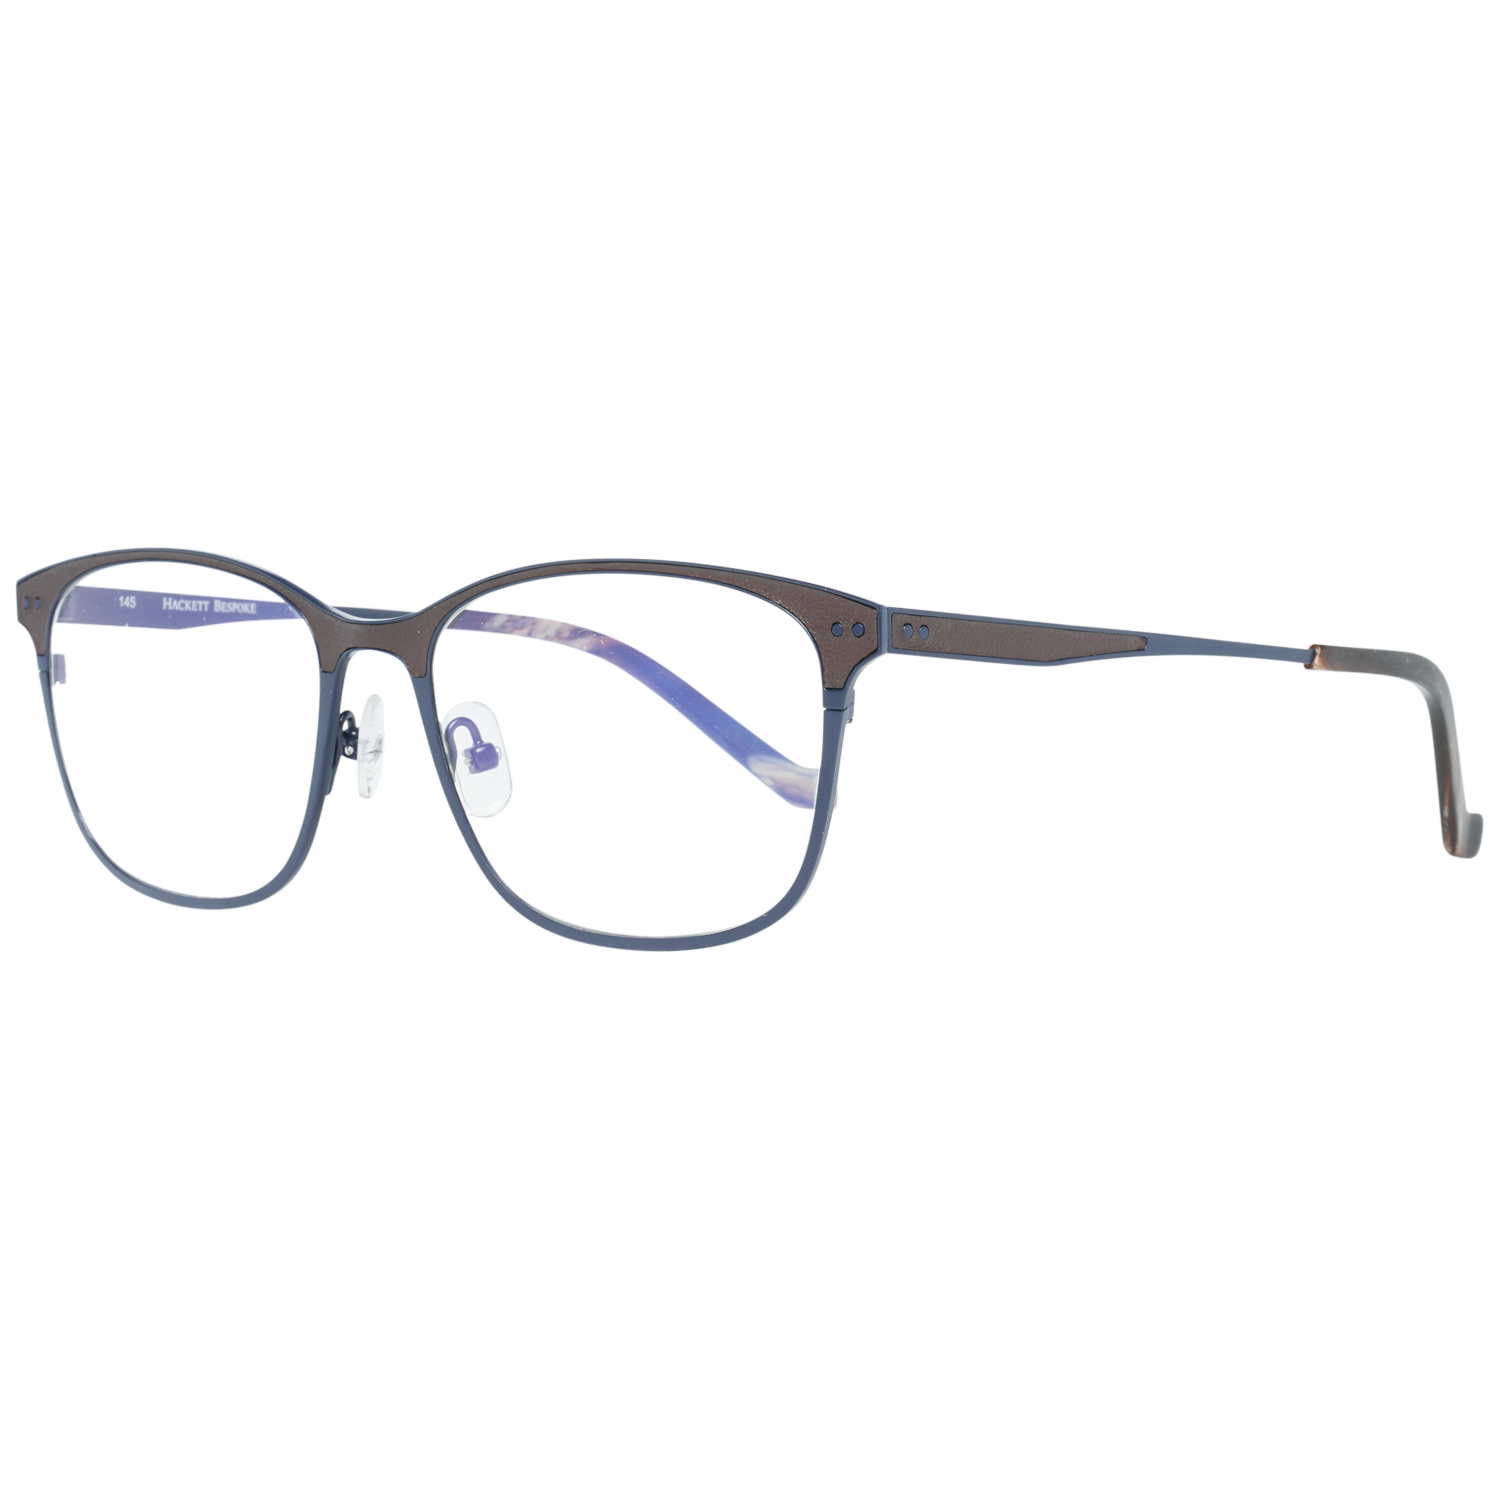 Hackett Bespoke Optical Frame HEB178 54684 Blue